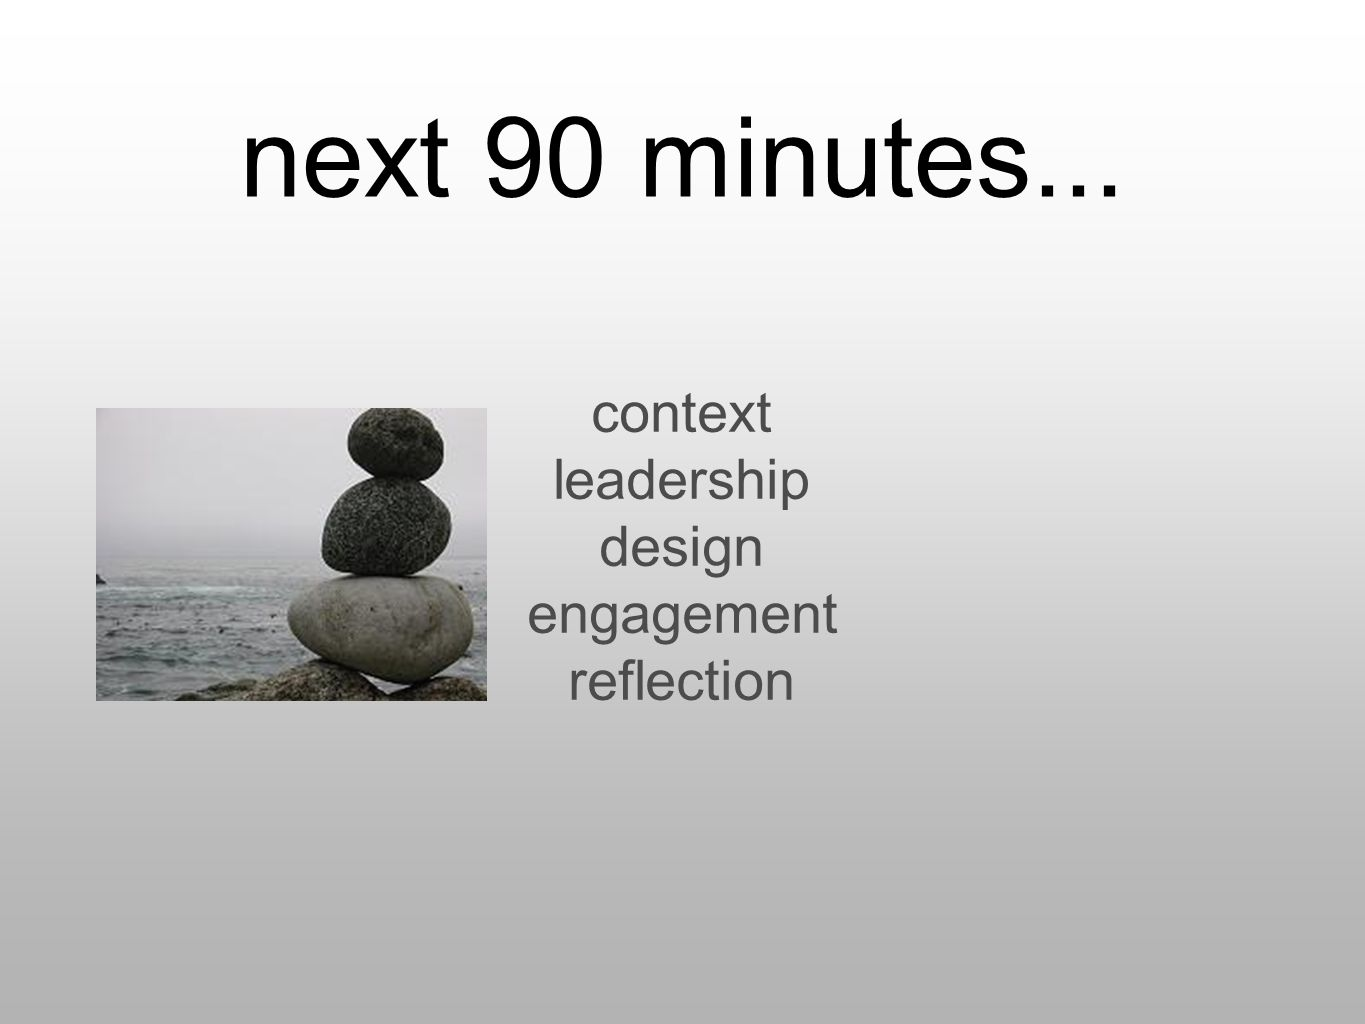 next 90 minutes... context leadership design engagement reflection